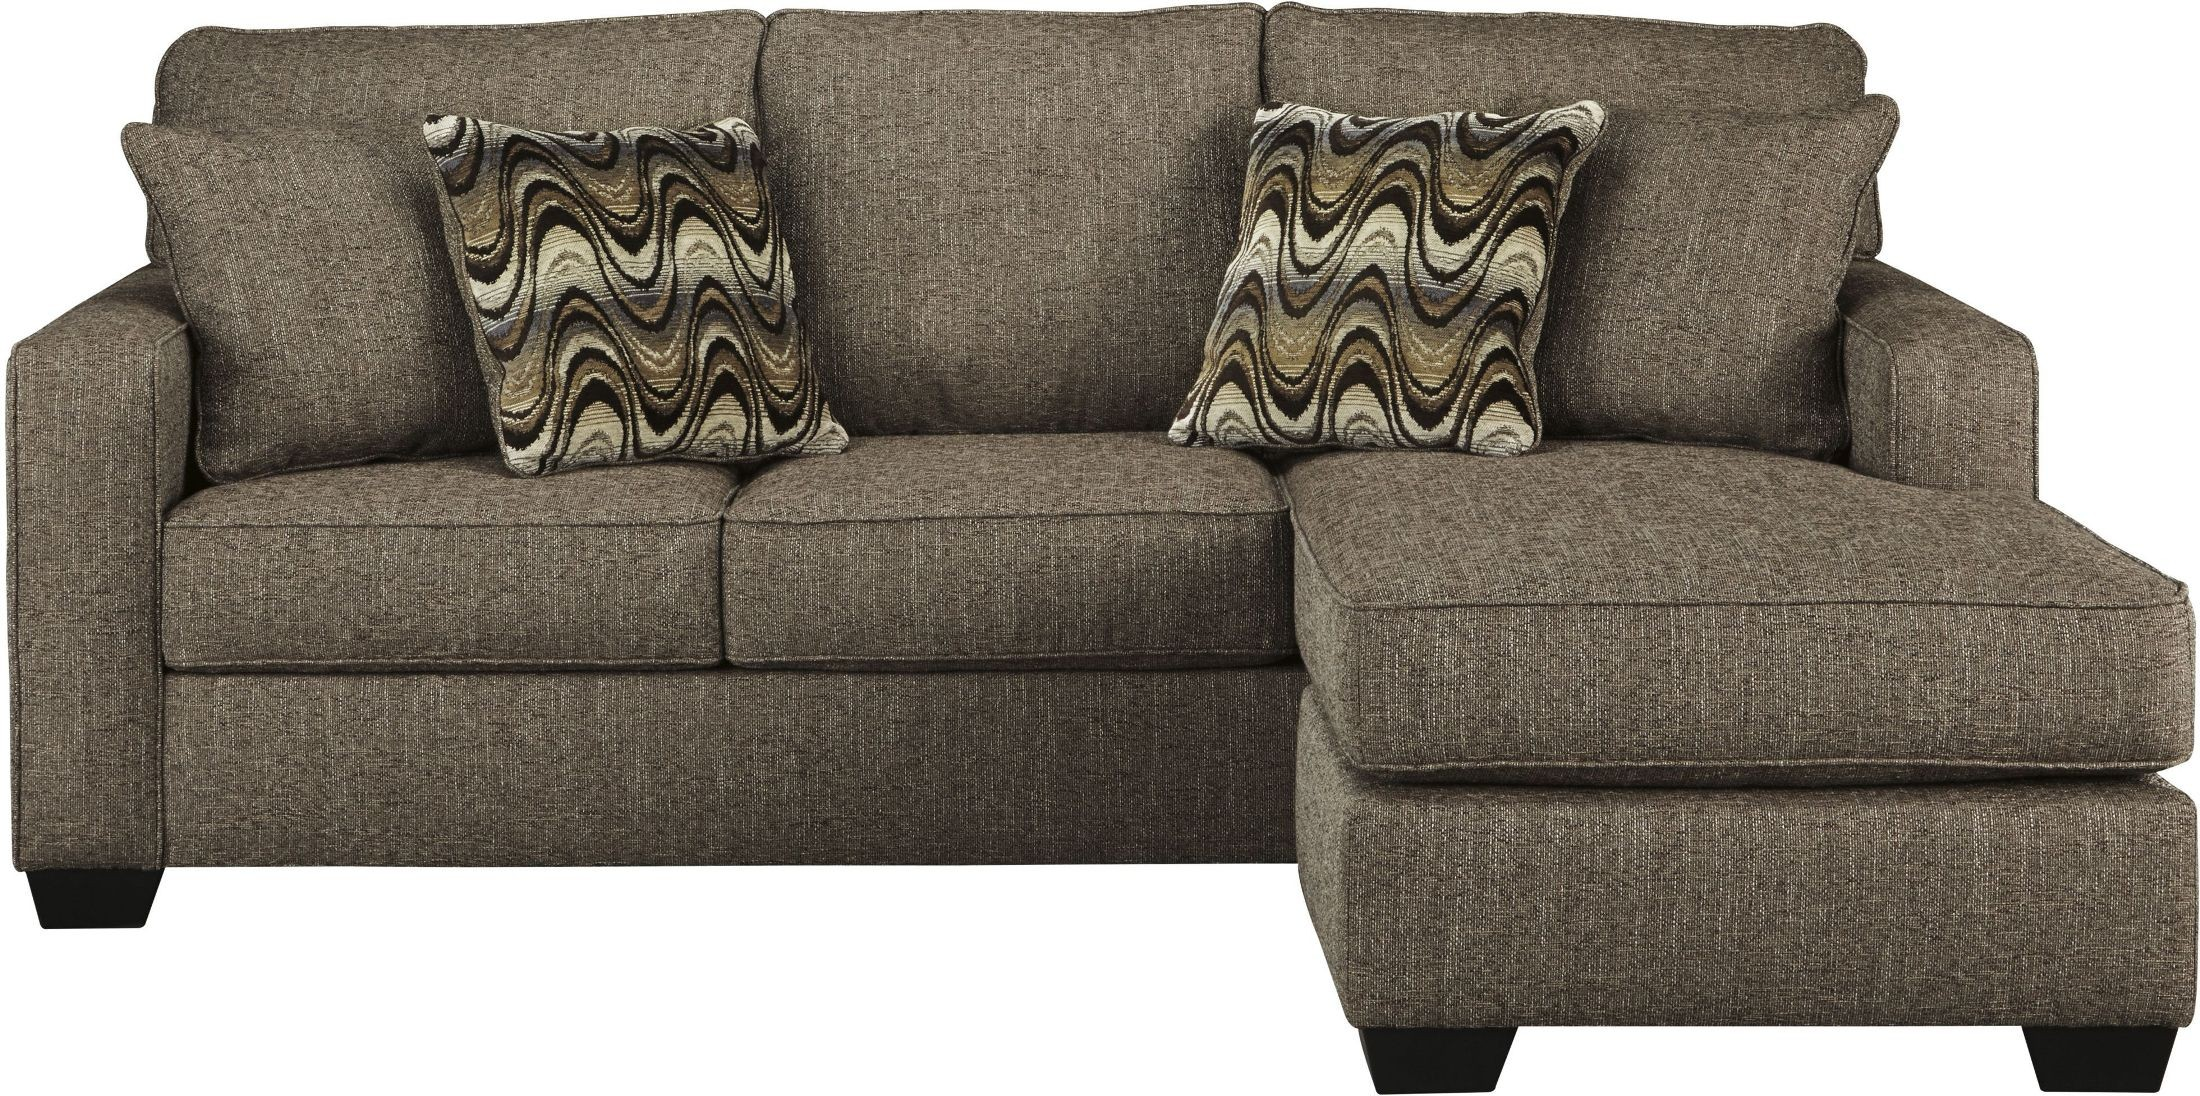 Tanacra tweed sofa chaise 1460218 ashley for Ashley brown sofa chaise